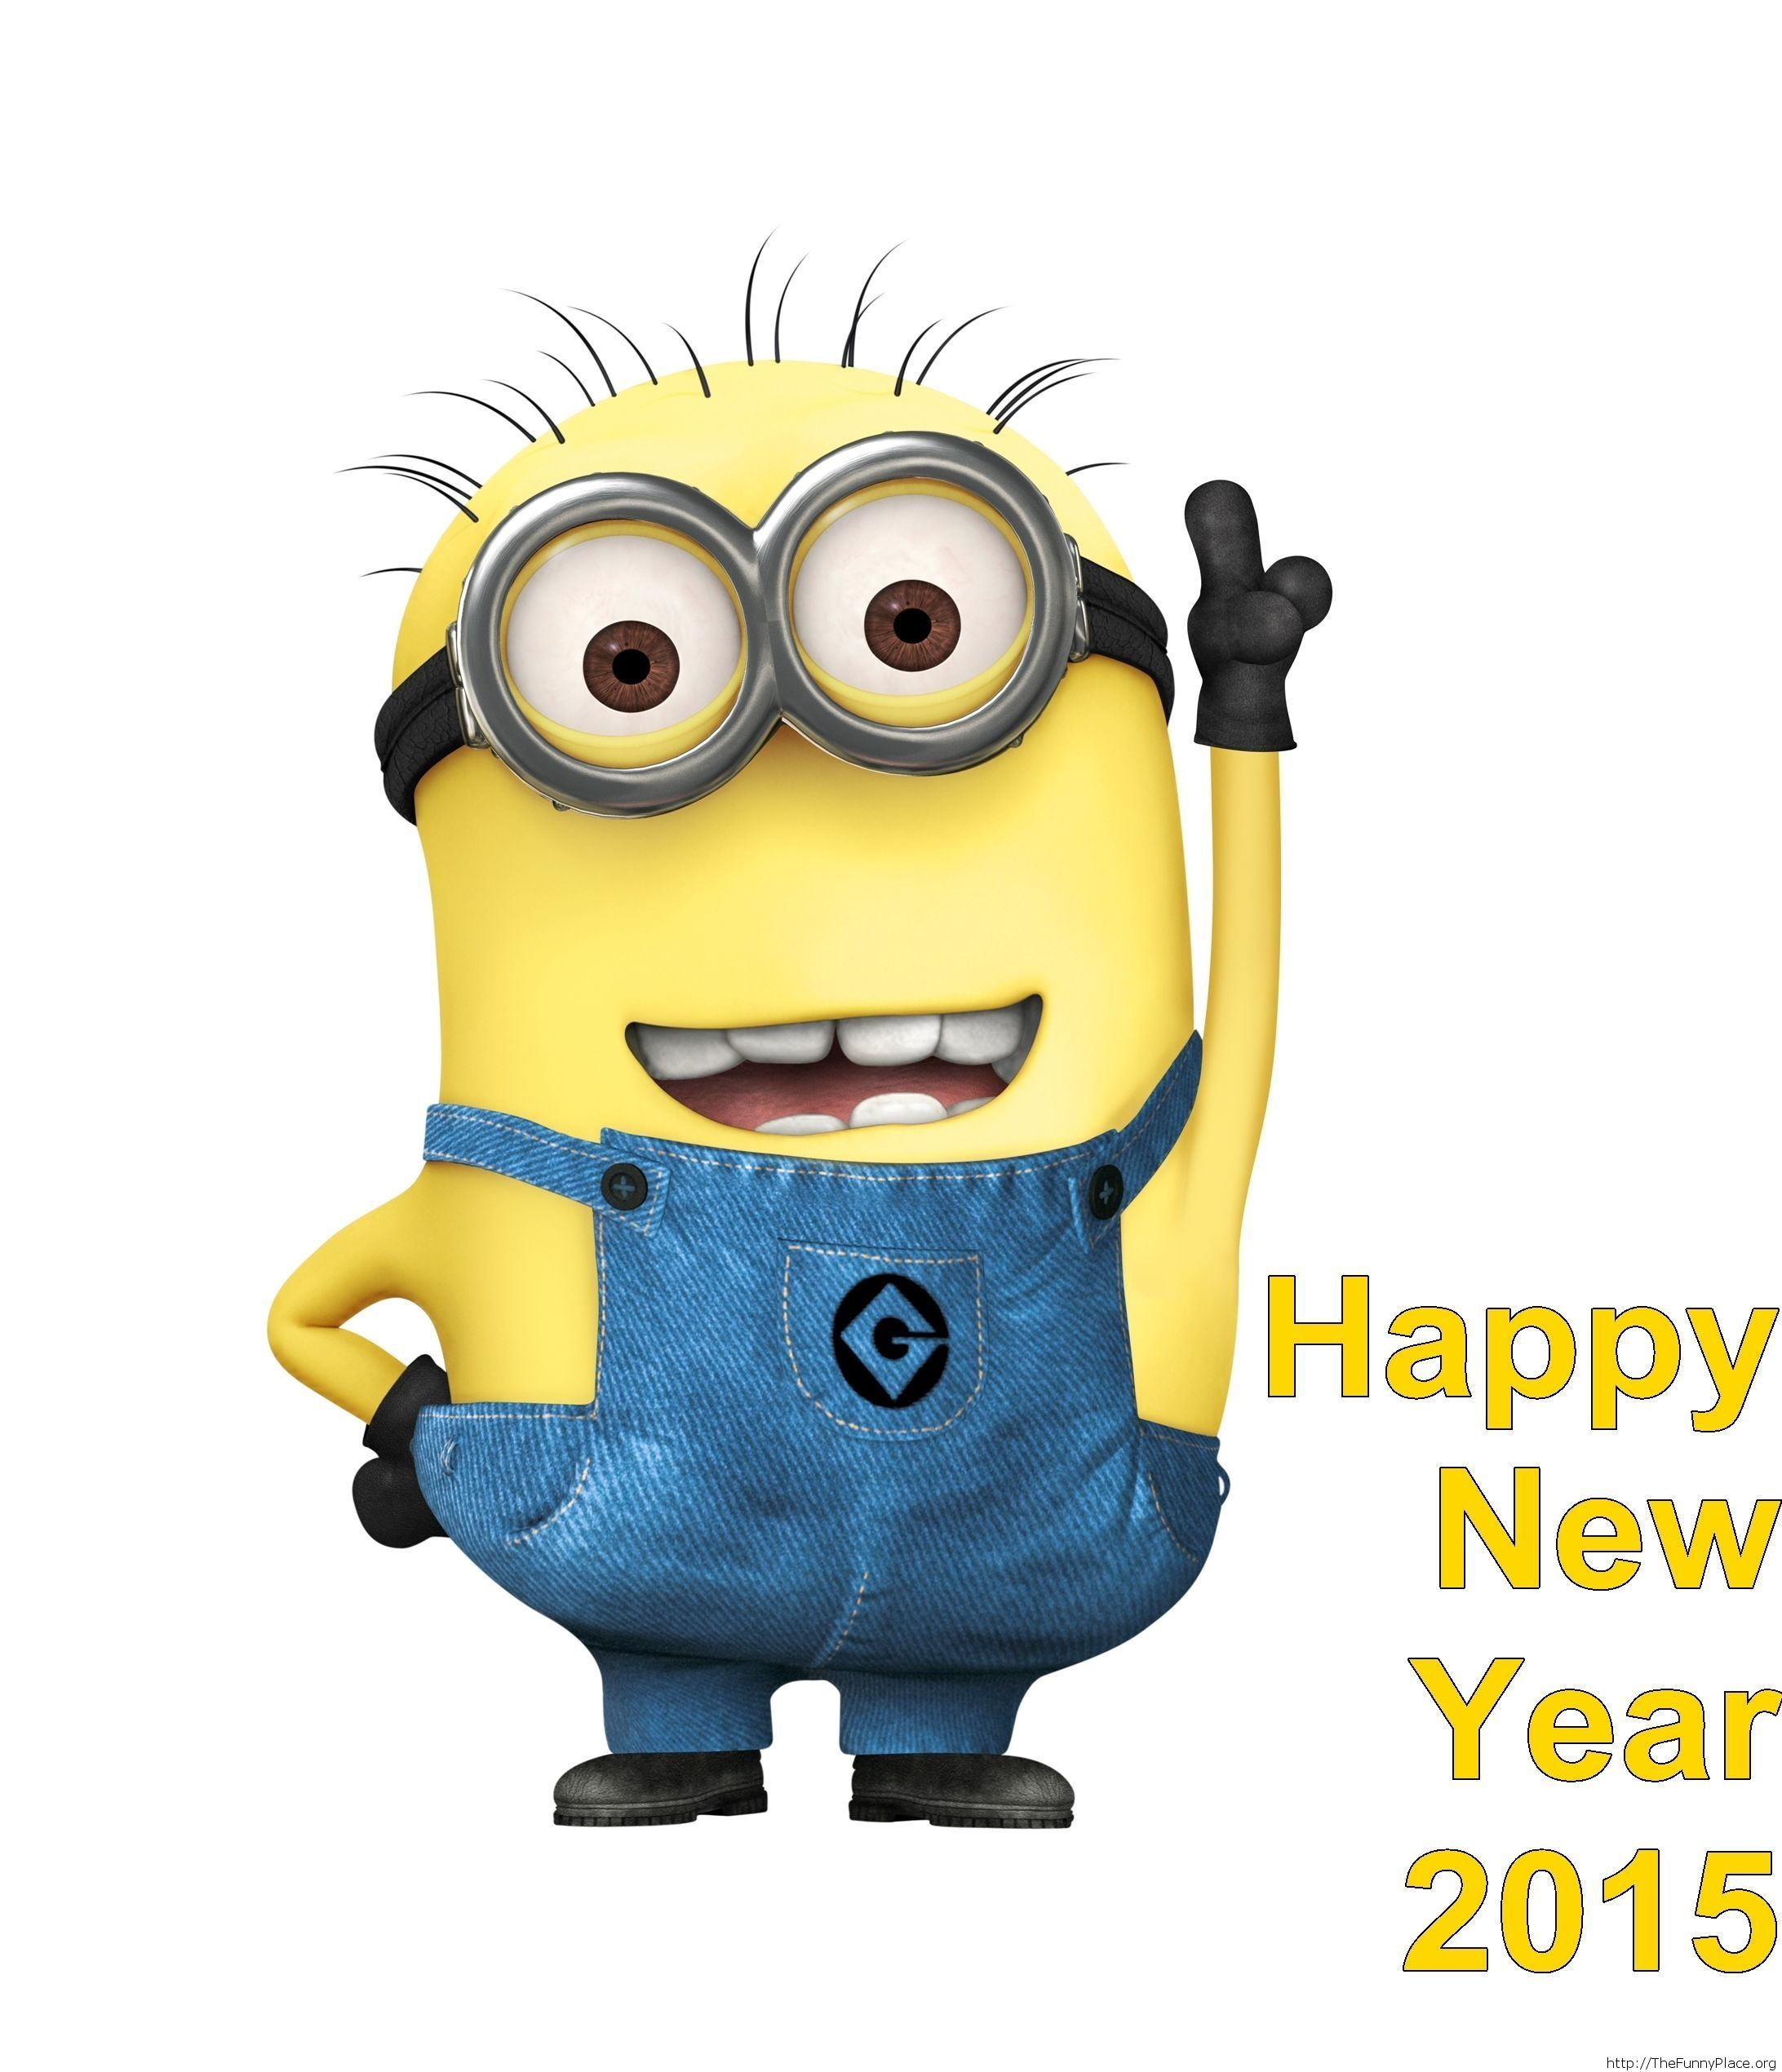 Me Gusta Funnies Happy New Year 2014: Welcome 2015 Funny Minion Wallpaper